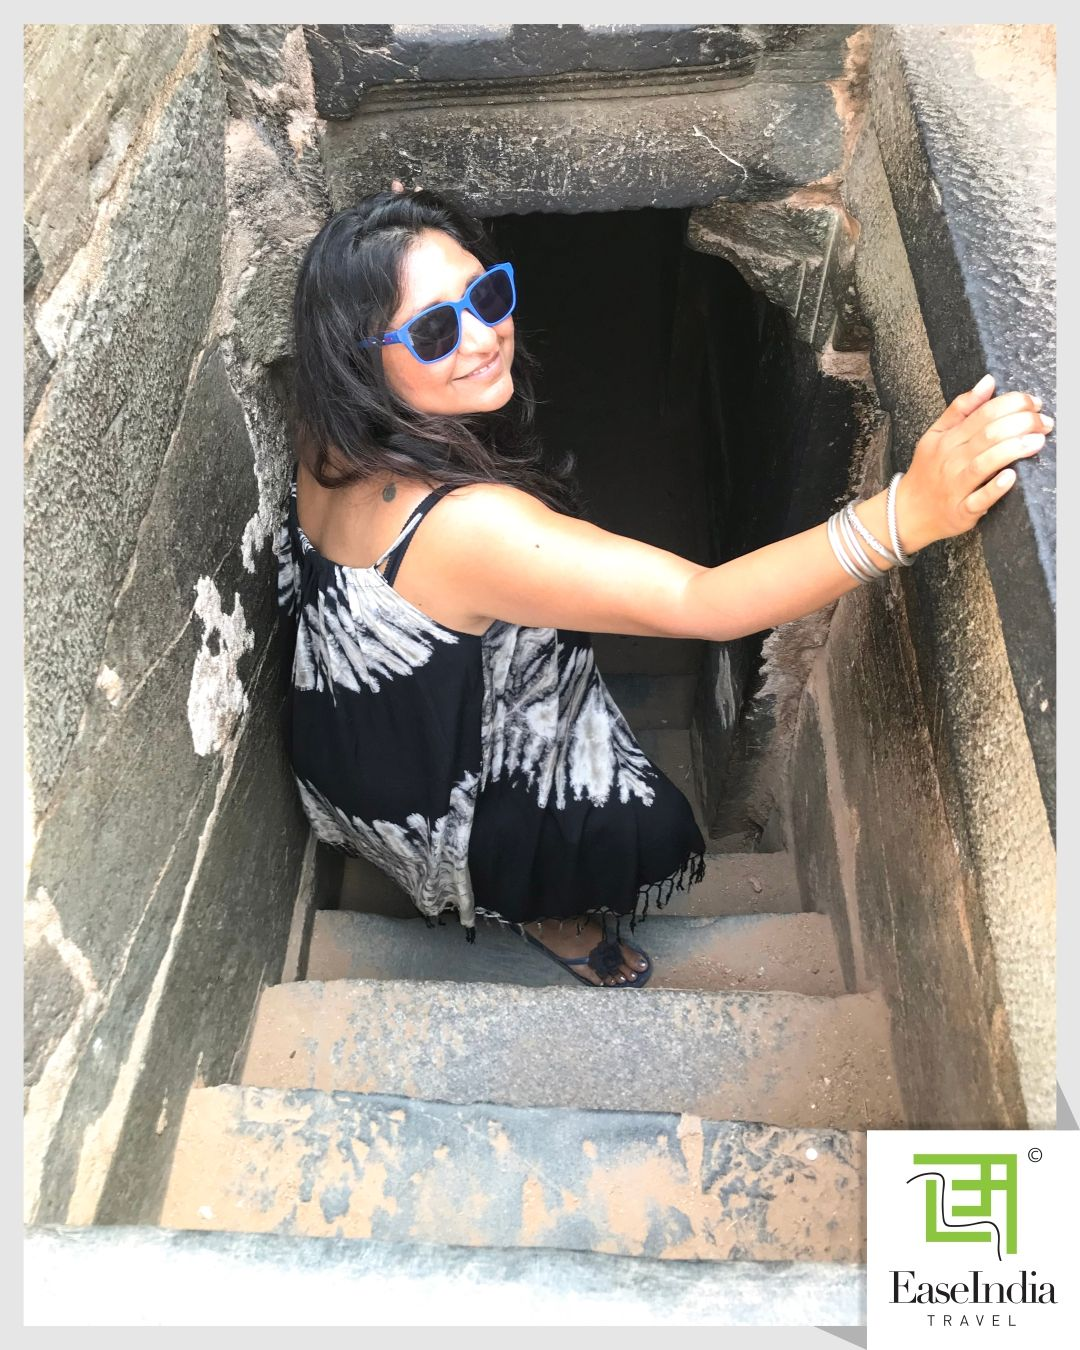 Peeping into the King's Secret Chamber 🤫 of the Vijayanagar Empire in #hampi. - A secret hideaway for the king is a secret underground chamber where king Is supposed to meet his ministers and spies. -  #Hampitravel is waiting for y'all! Right Now your safety and well-being is the foremost important.  #secretchamber #hampitourism #stayhomestaysafe #weareinthistogether #travel #travelust #wanderlust #travelling #traveller #wednesdaywisdom #waybackwednesday #travelbug